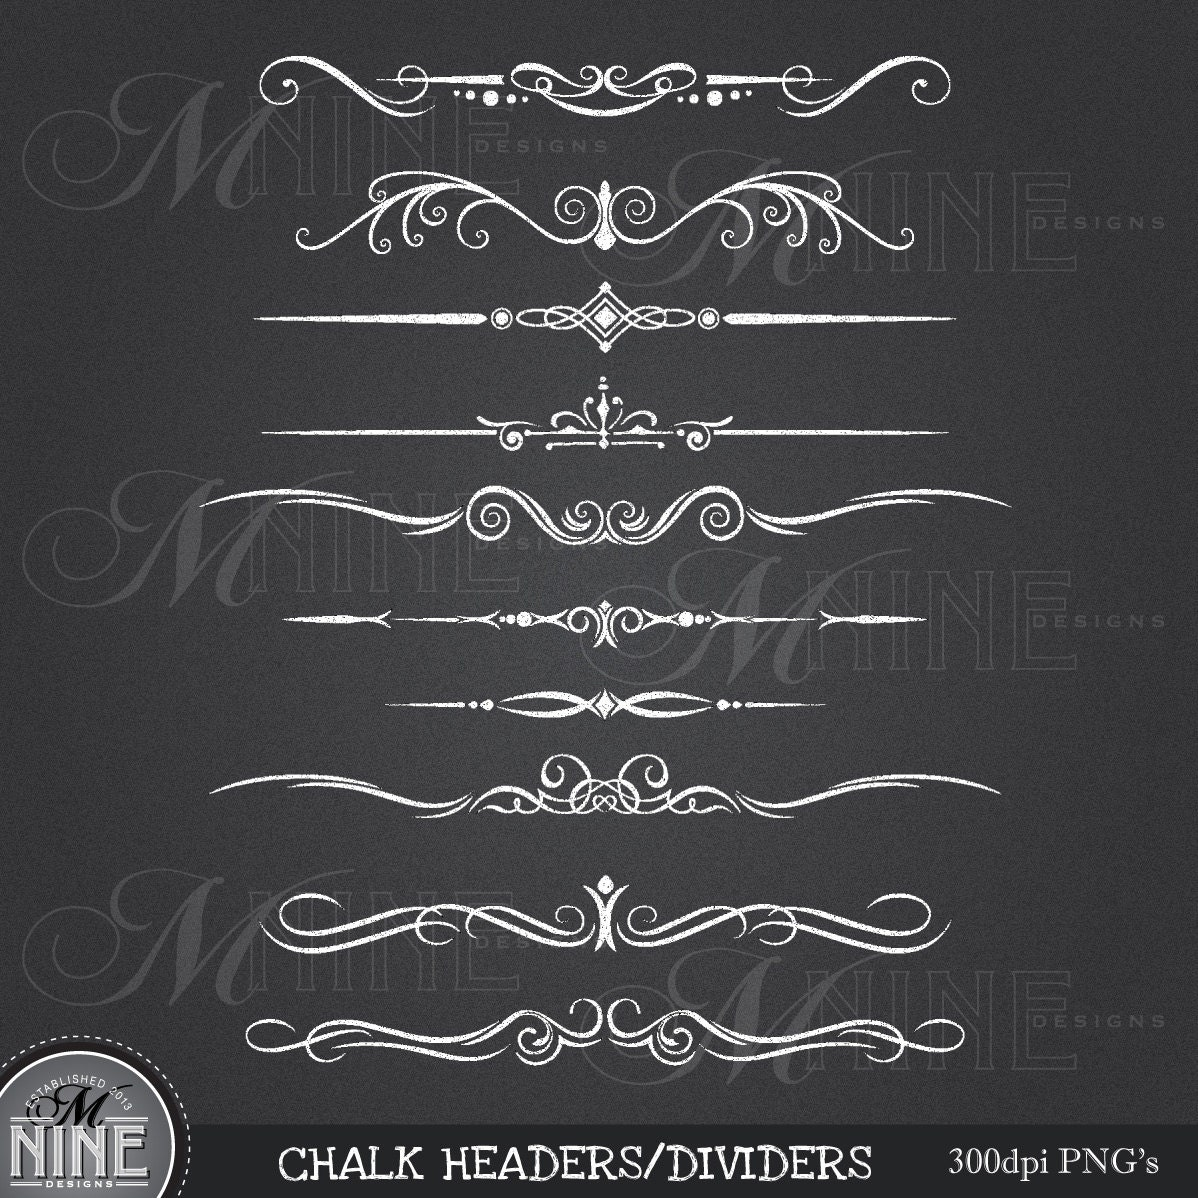 CHALK HEADERS DIVIDERS Clipart Design Elements By MNINEDESIGNS